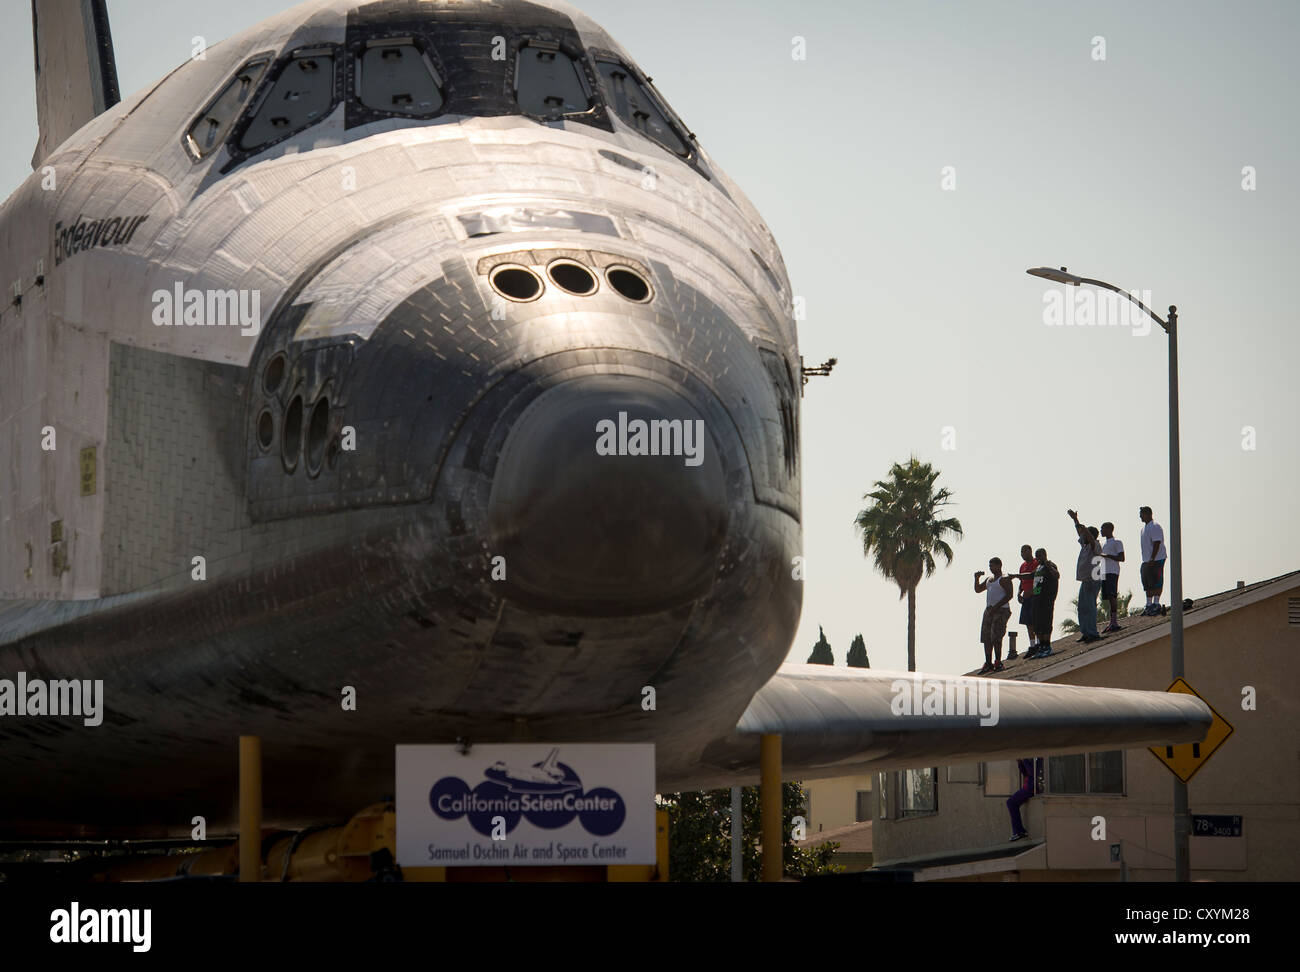 NASA space shuttle Endeavour is maneuvered on Crenshaw Blvd while on a 12-mile trip by road to its new home at the - Stock Image